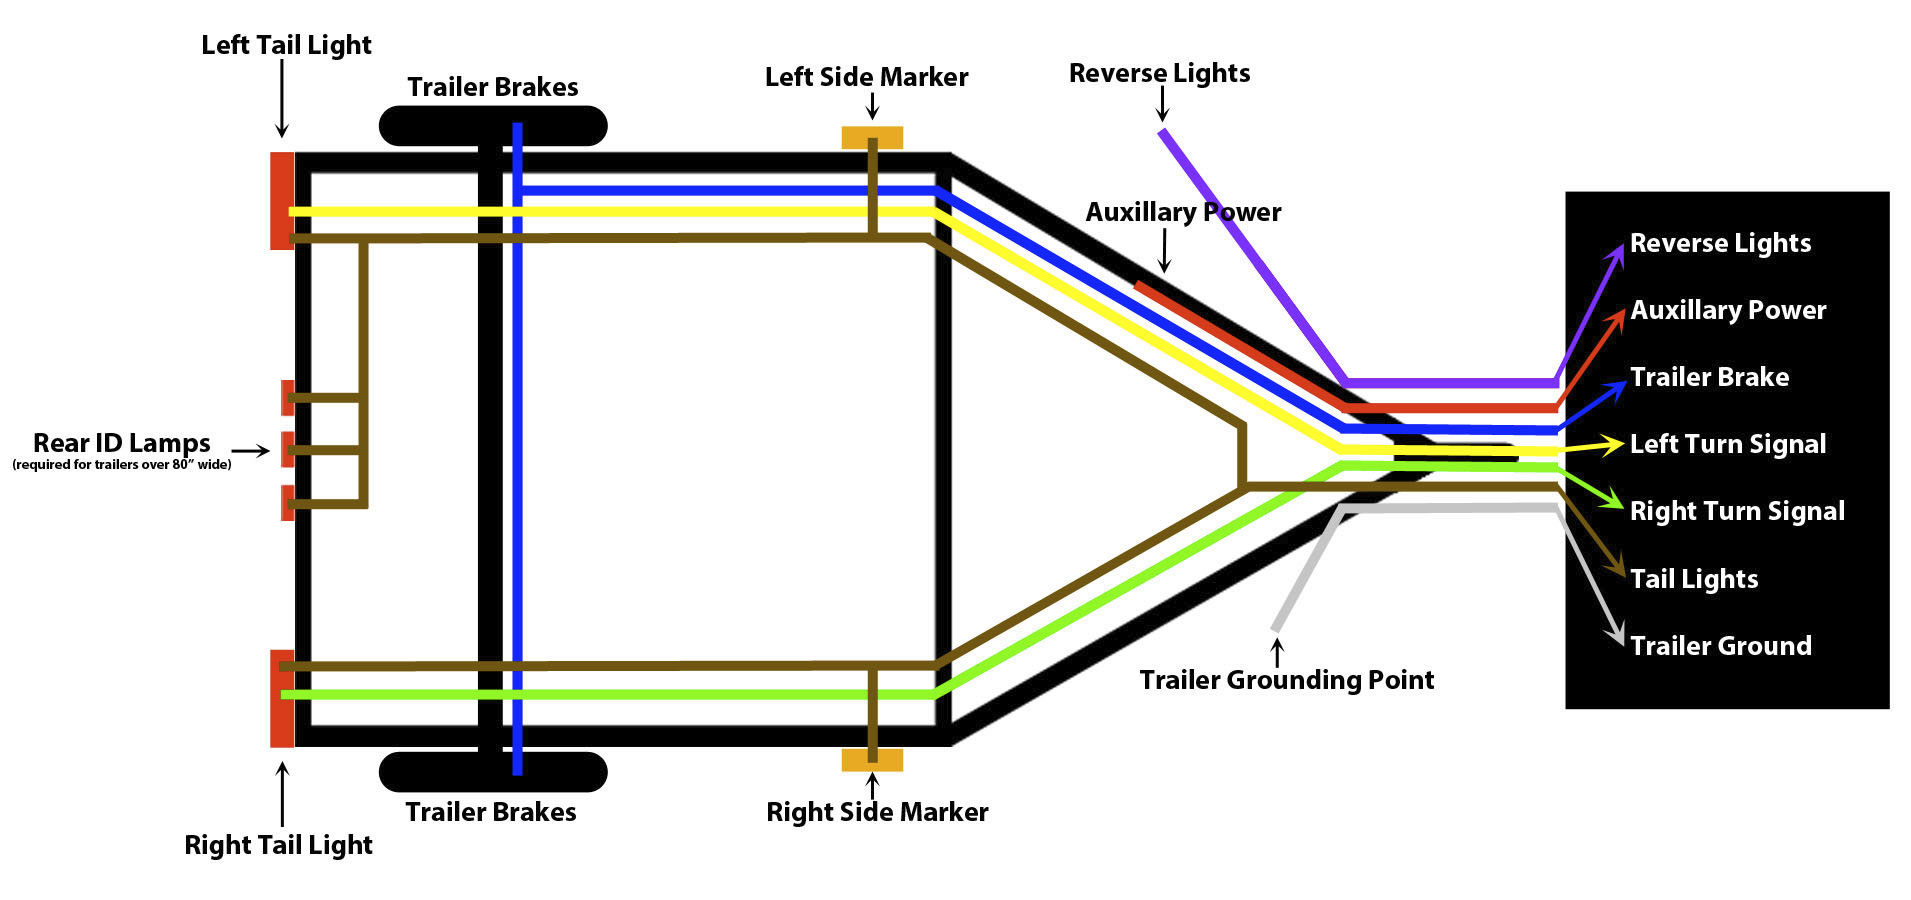 How To Wire Trailer Lights - Trailer Wiring Guide & Videos - Trailer Connector Wiring Diagram 7 Way